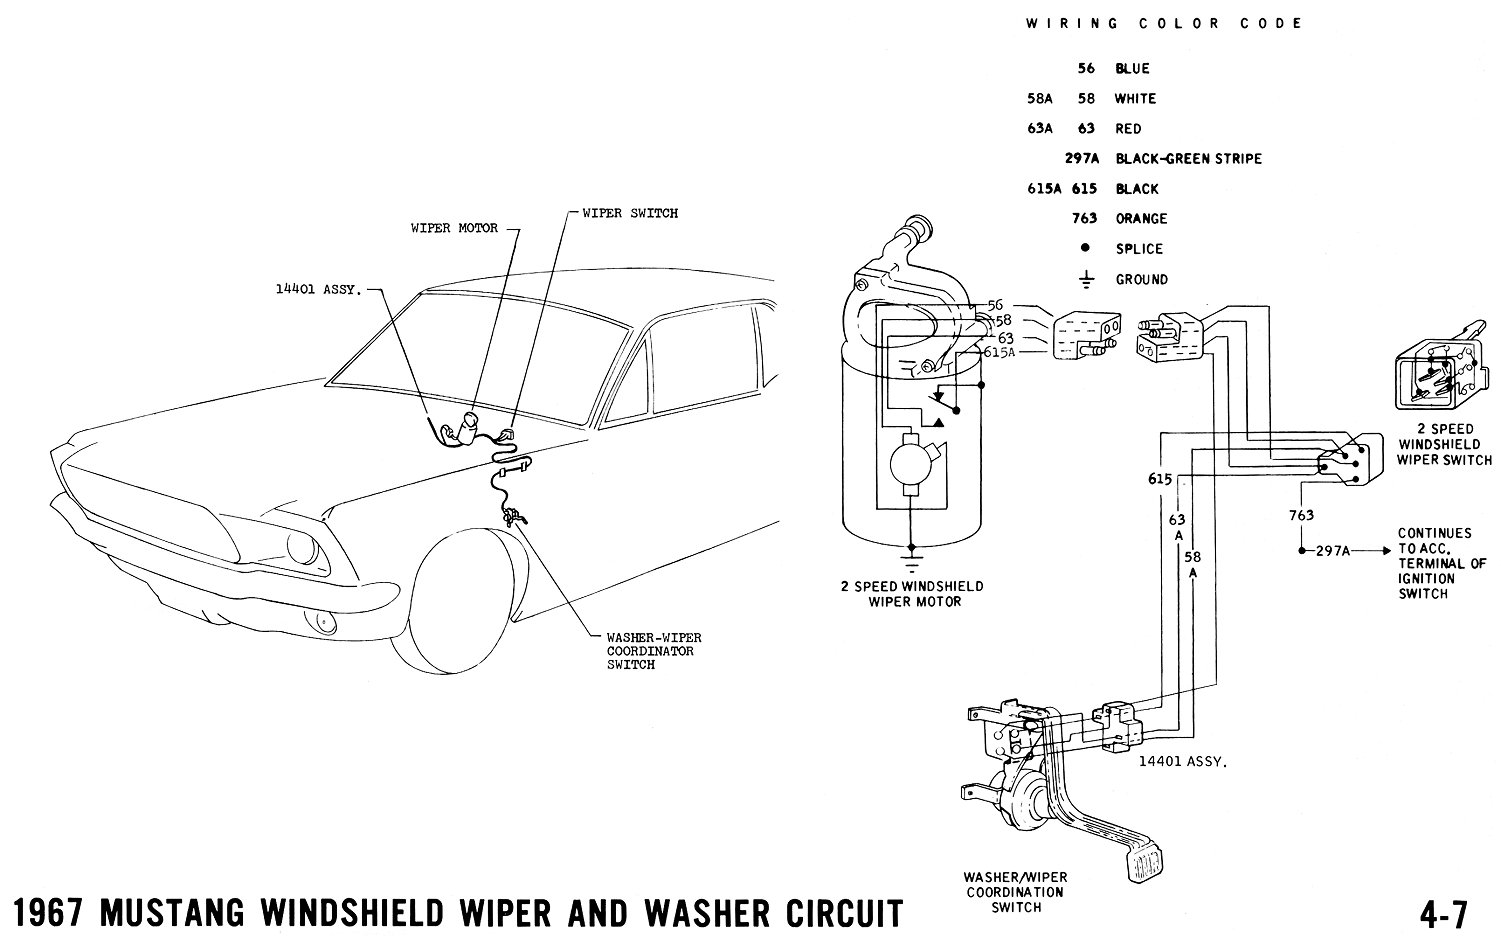 2009 ford mustang wiring diagram wiring diagram Ford Mustang Wiring Schematics 1966 mustang wiper wiring diagram all wiring diagram66 mustang wiper wiring diagram wiring library 2009 ford